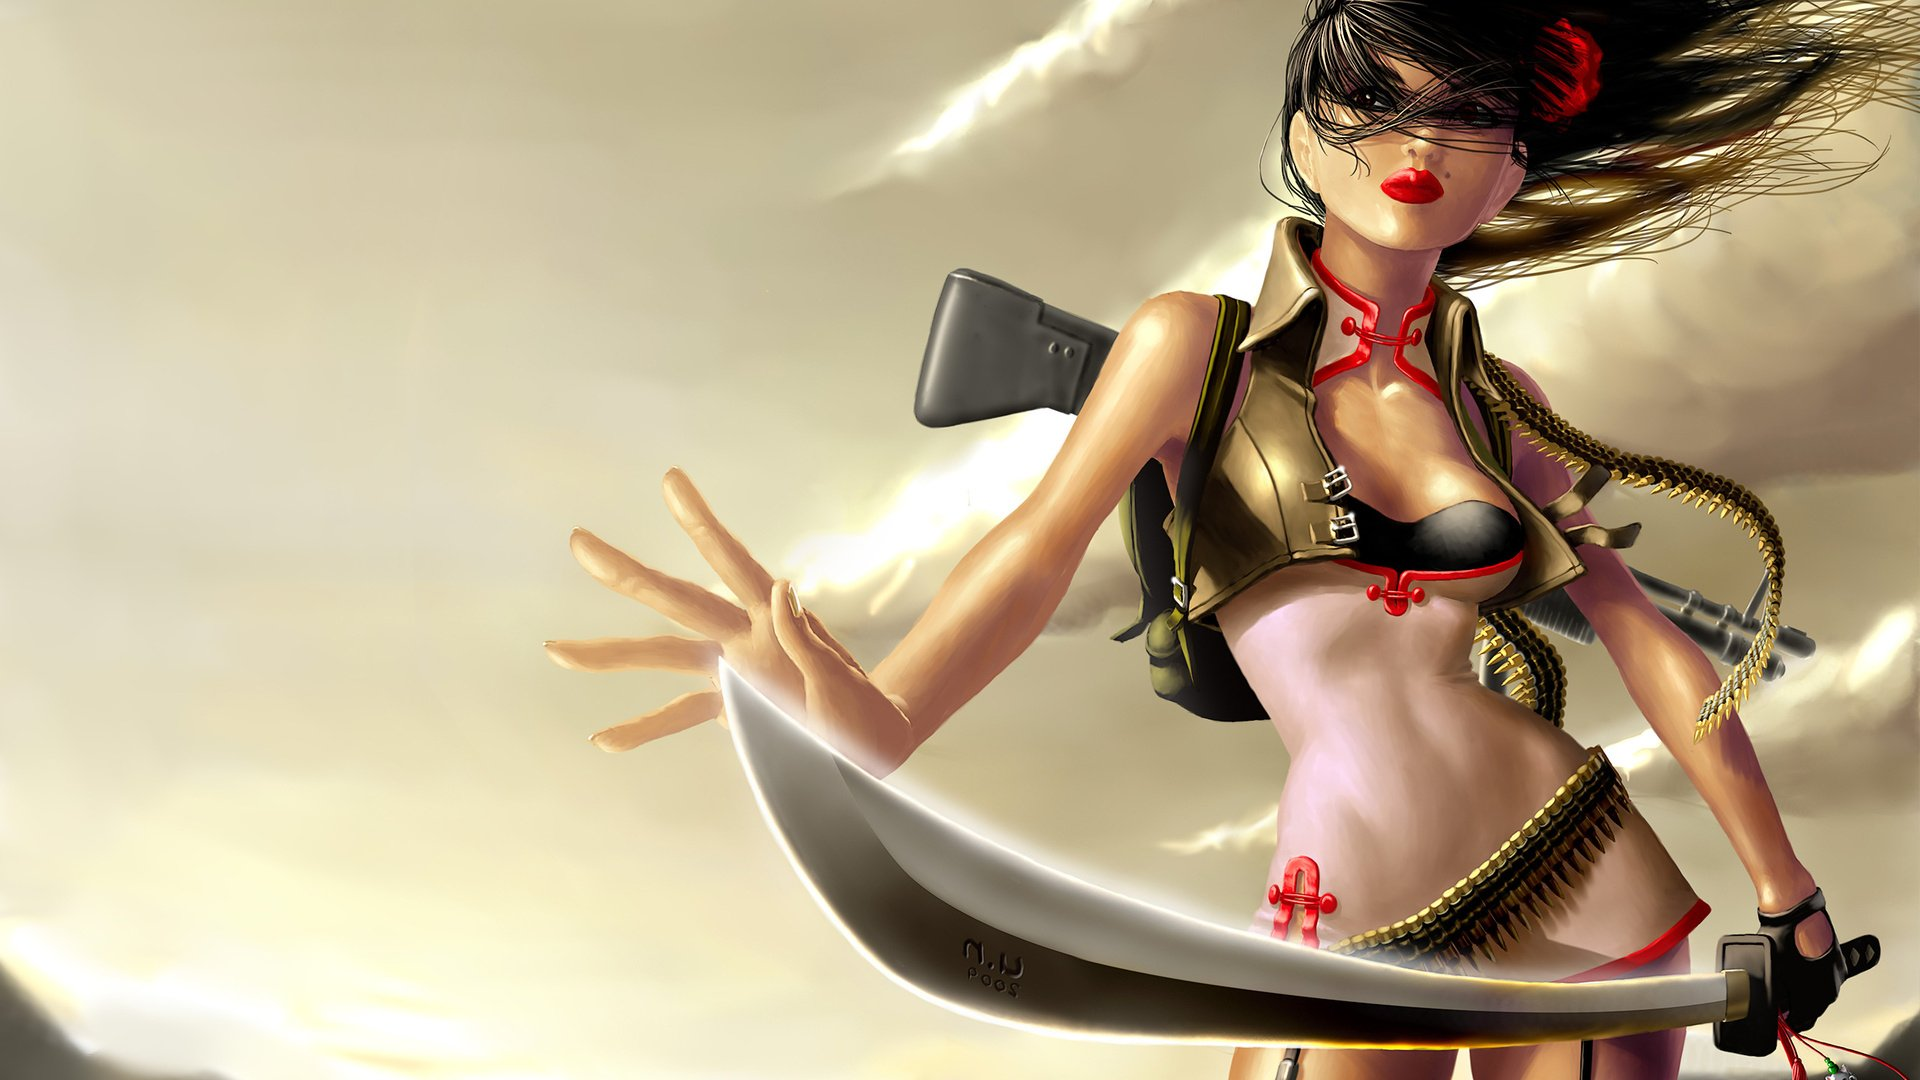 Fantasy - Women Warrior  Cool Lipstick Red CGI Weapon Sword Gun Ammo Belt Bullet Wallpaper